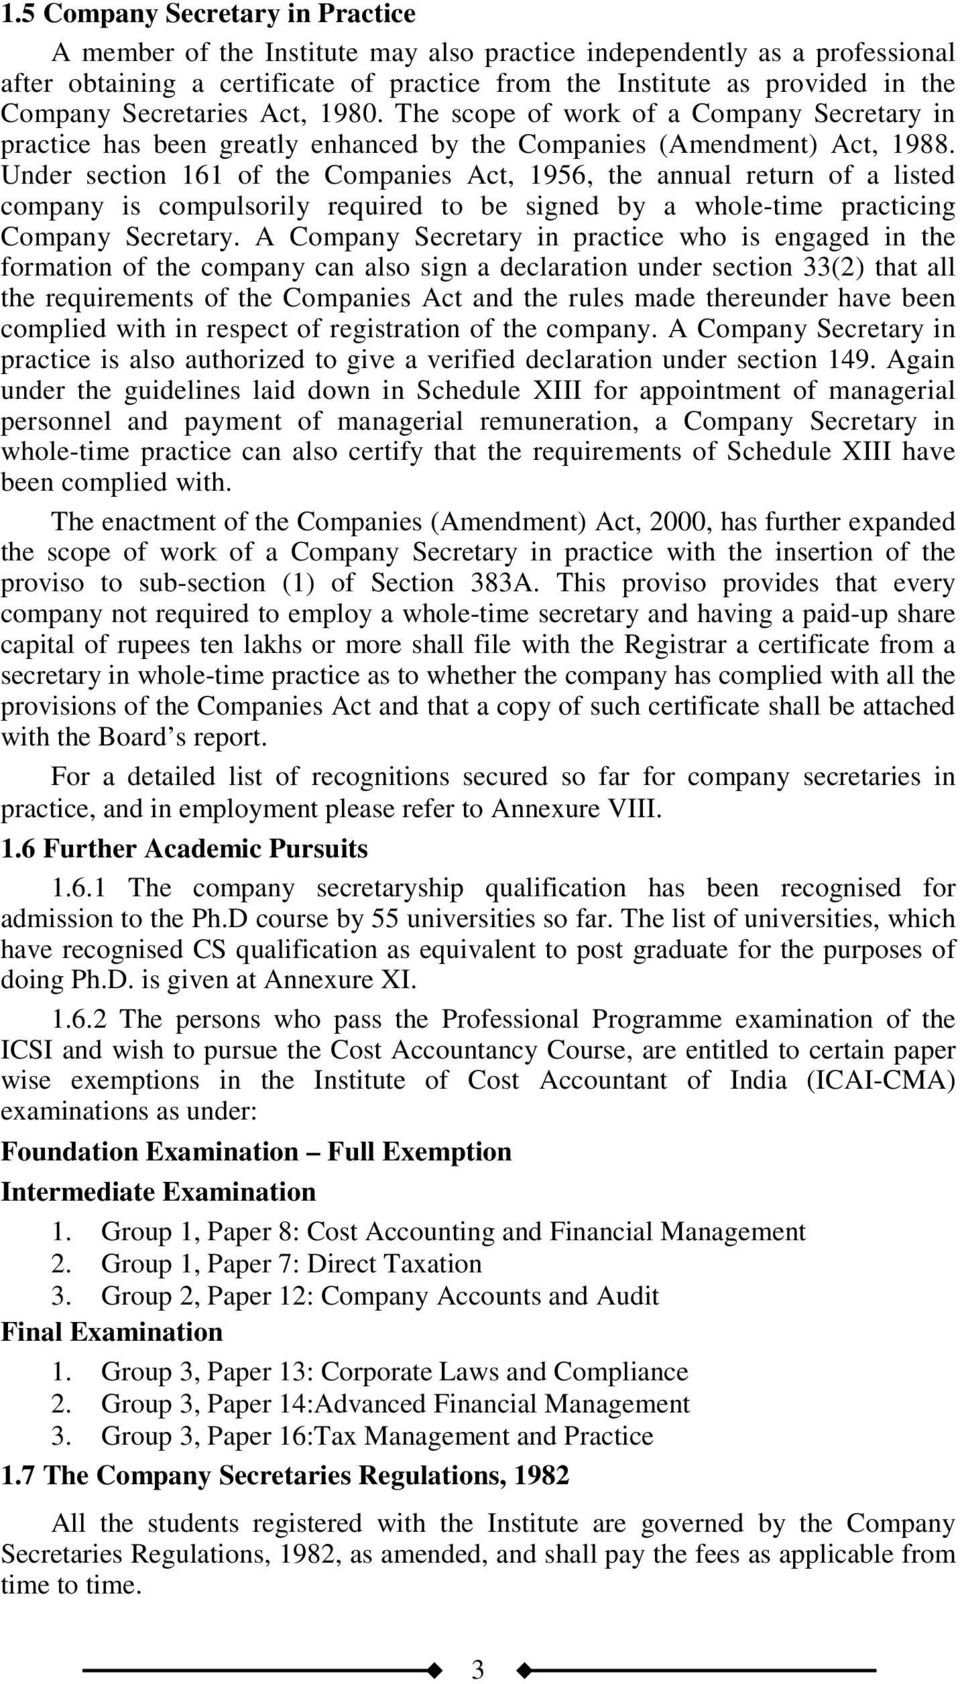 Under section 161 of the Companies Act, 1956, the annual return of a listed company is compulsorily required to be signed by a whole-time practicing Company Secretary.